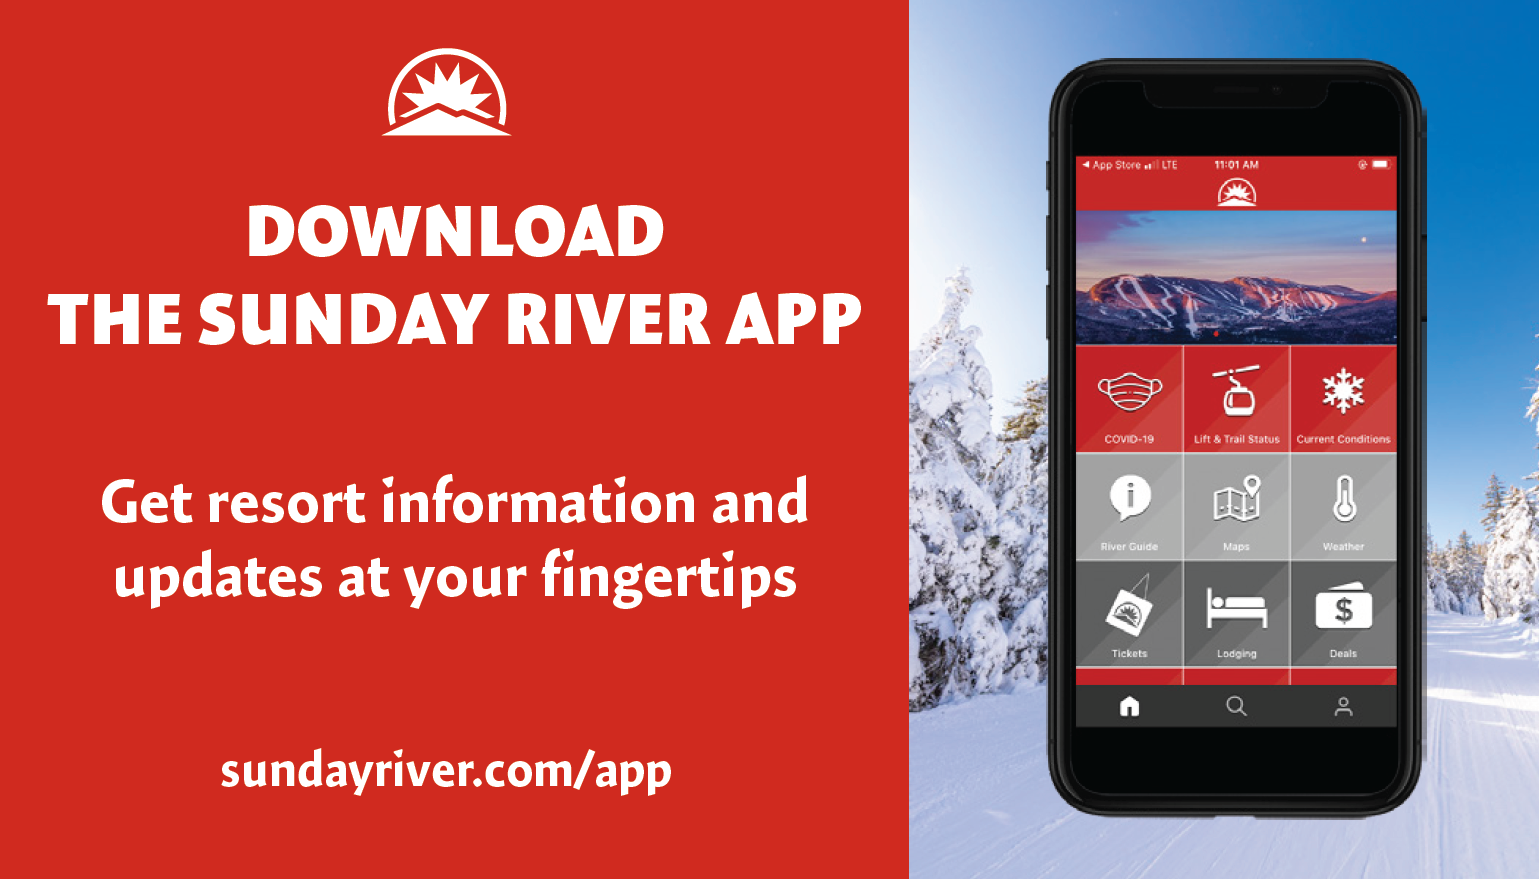 Download the Sunday River App Get Resort information and updates